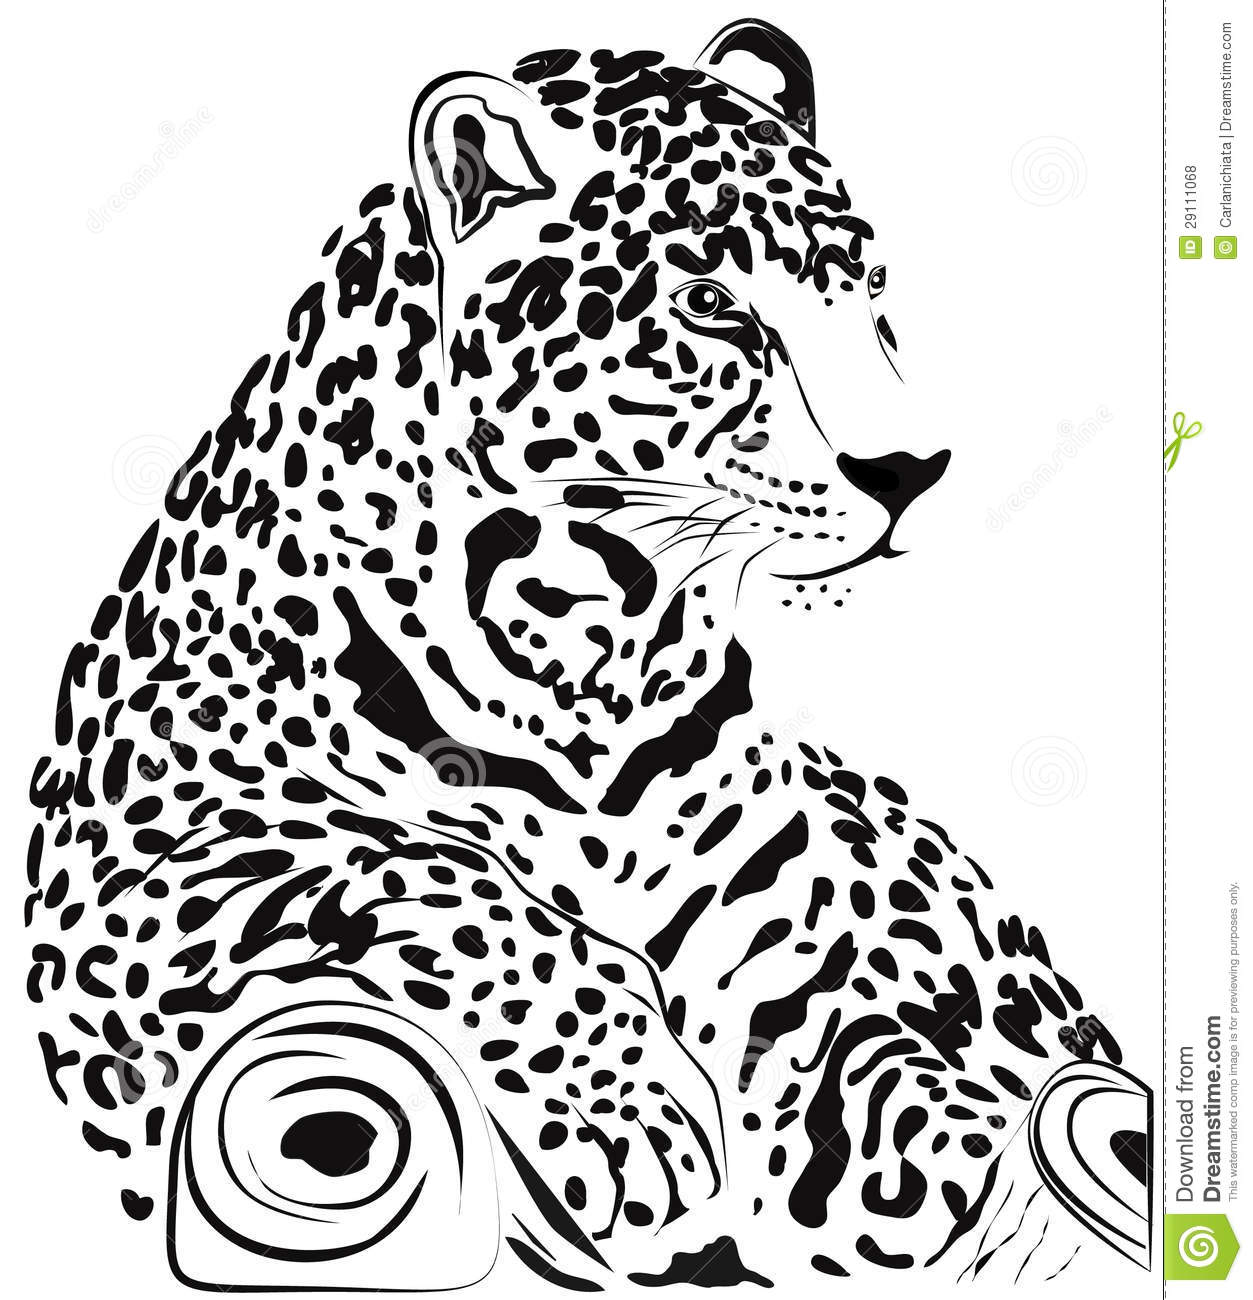 Jaguar Stock Vector Illustration Of Realistic Graphic